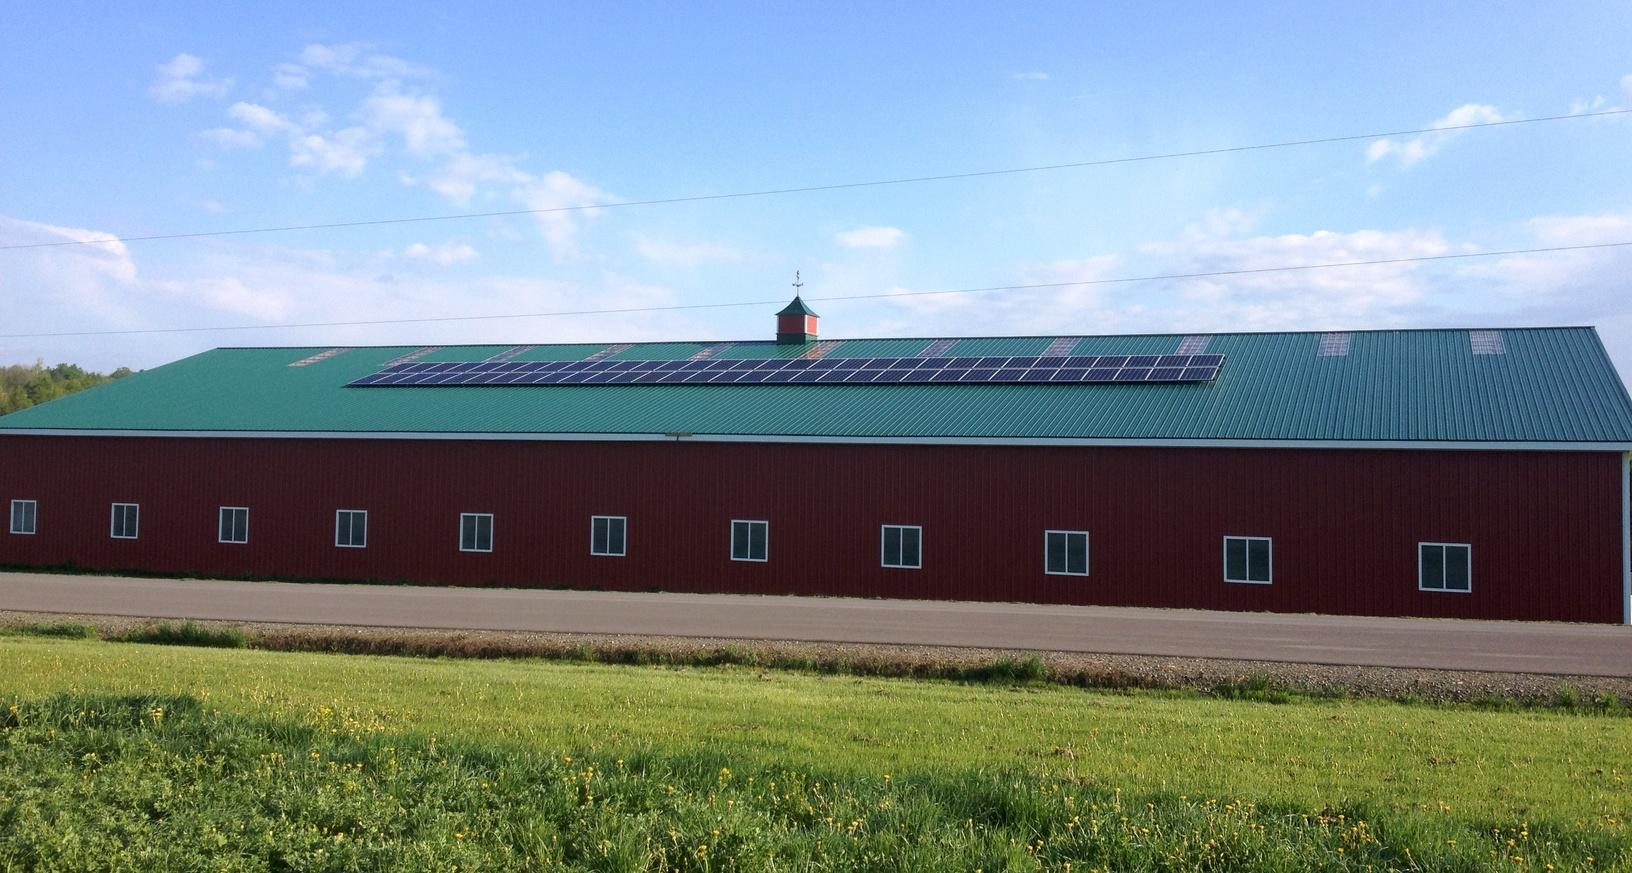 Solar Panel Installation in Cortland, NY - After Photo